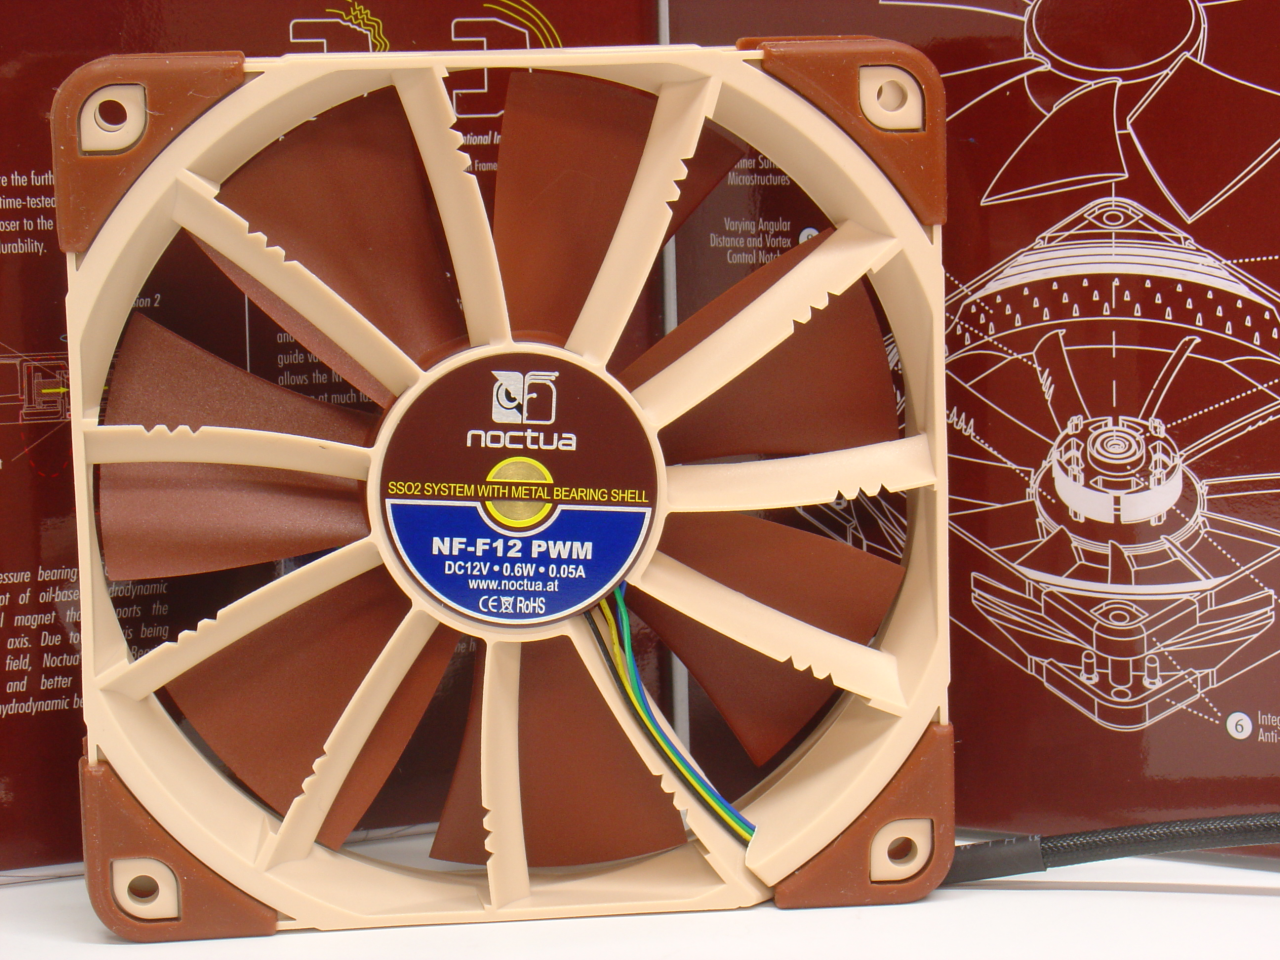 Noctua NF-F12 PWM and box